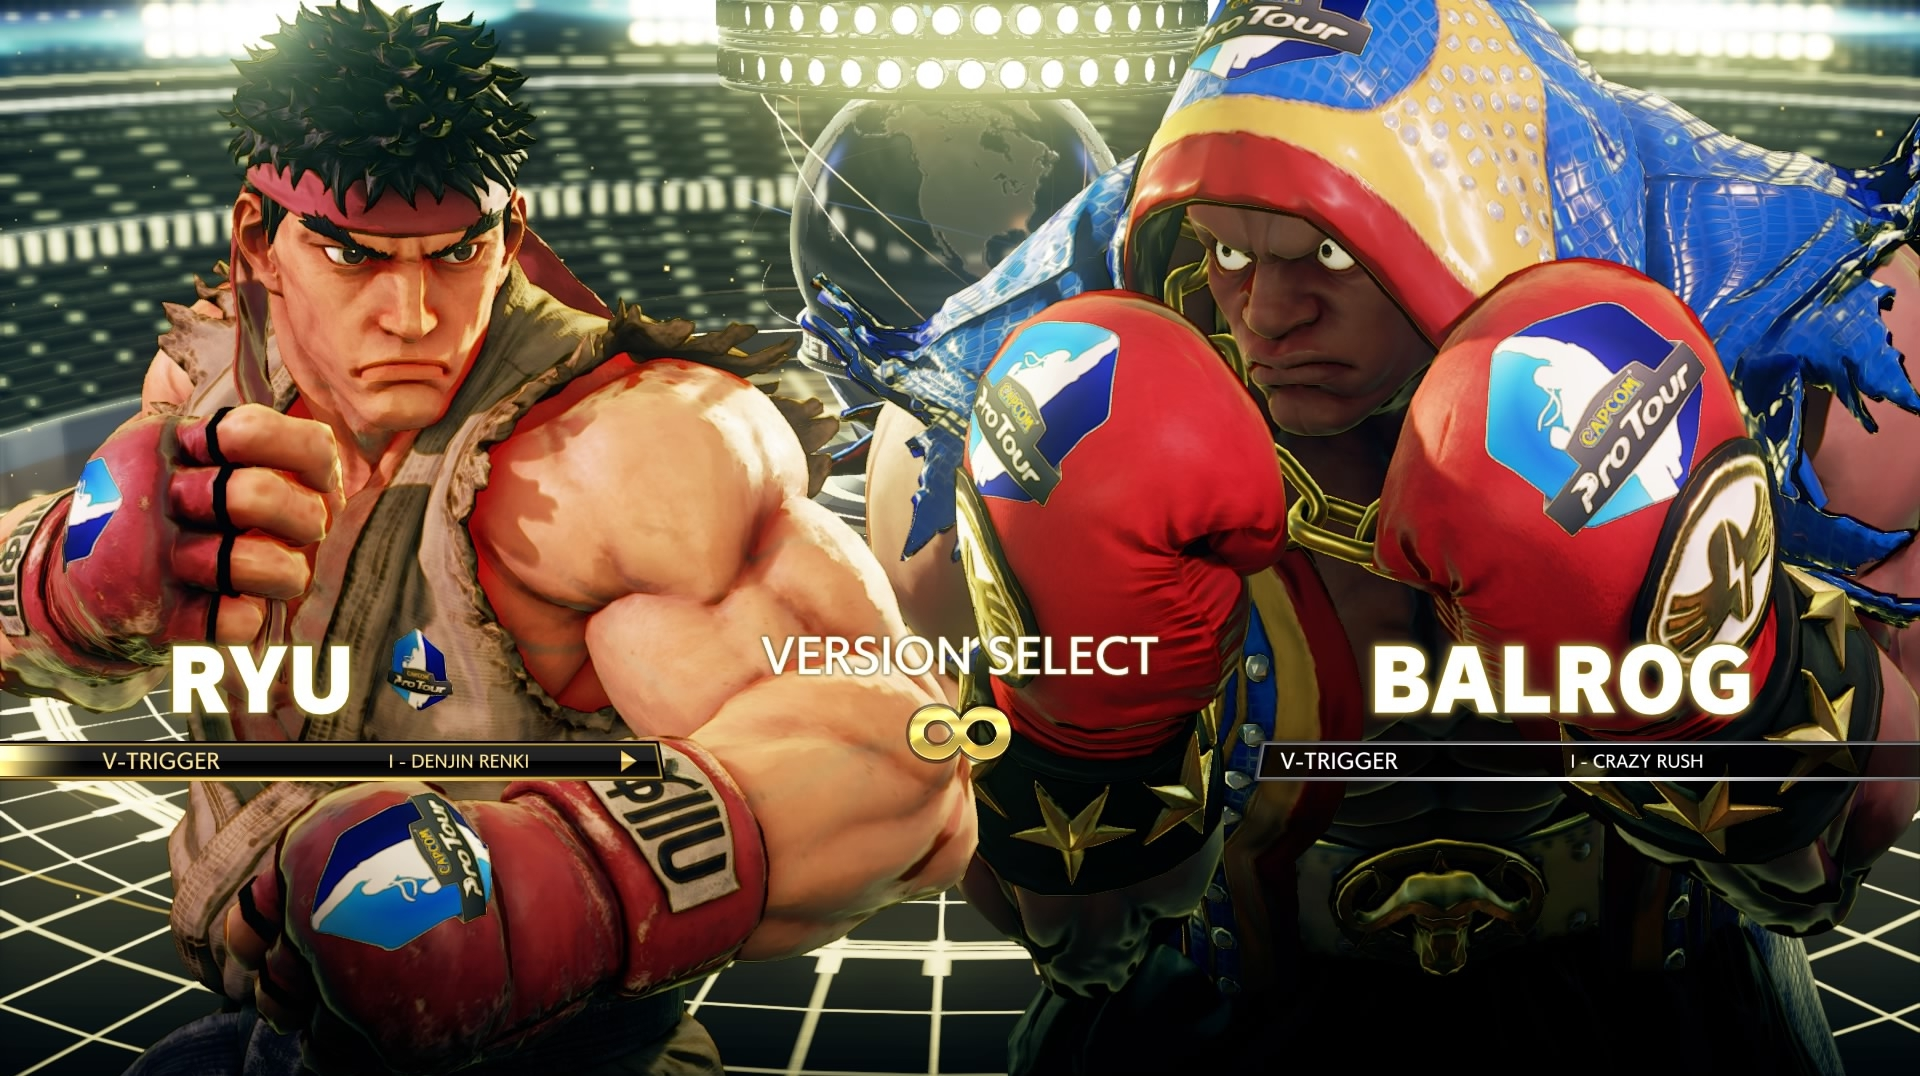 ultra street fighter 4 edition select arcade mode